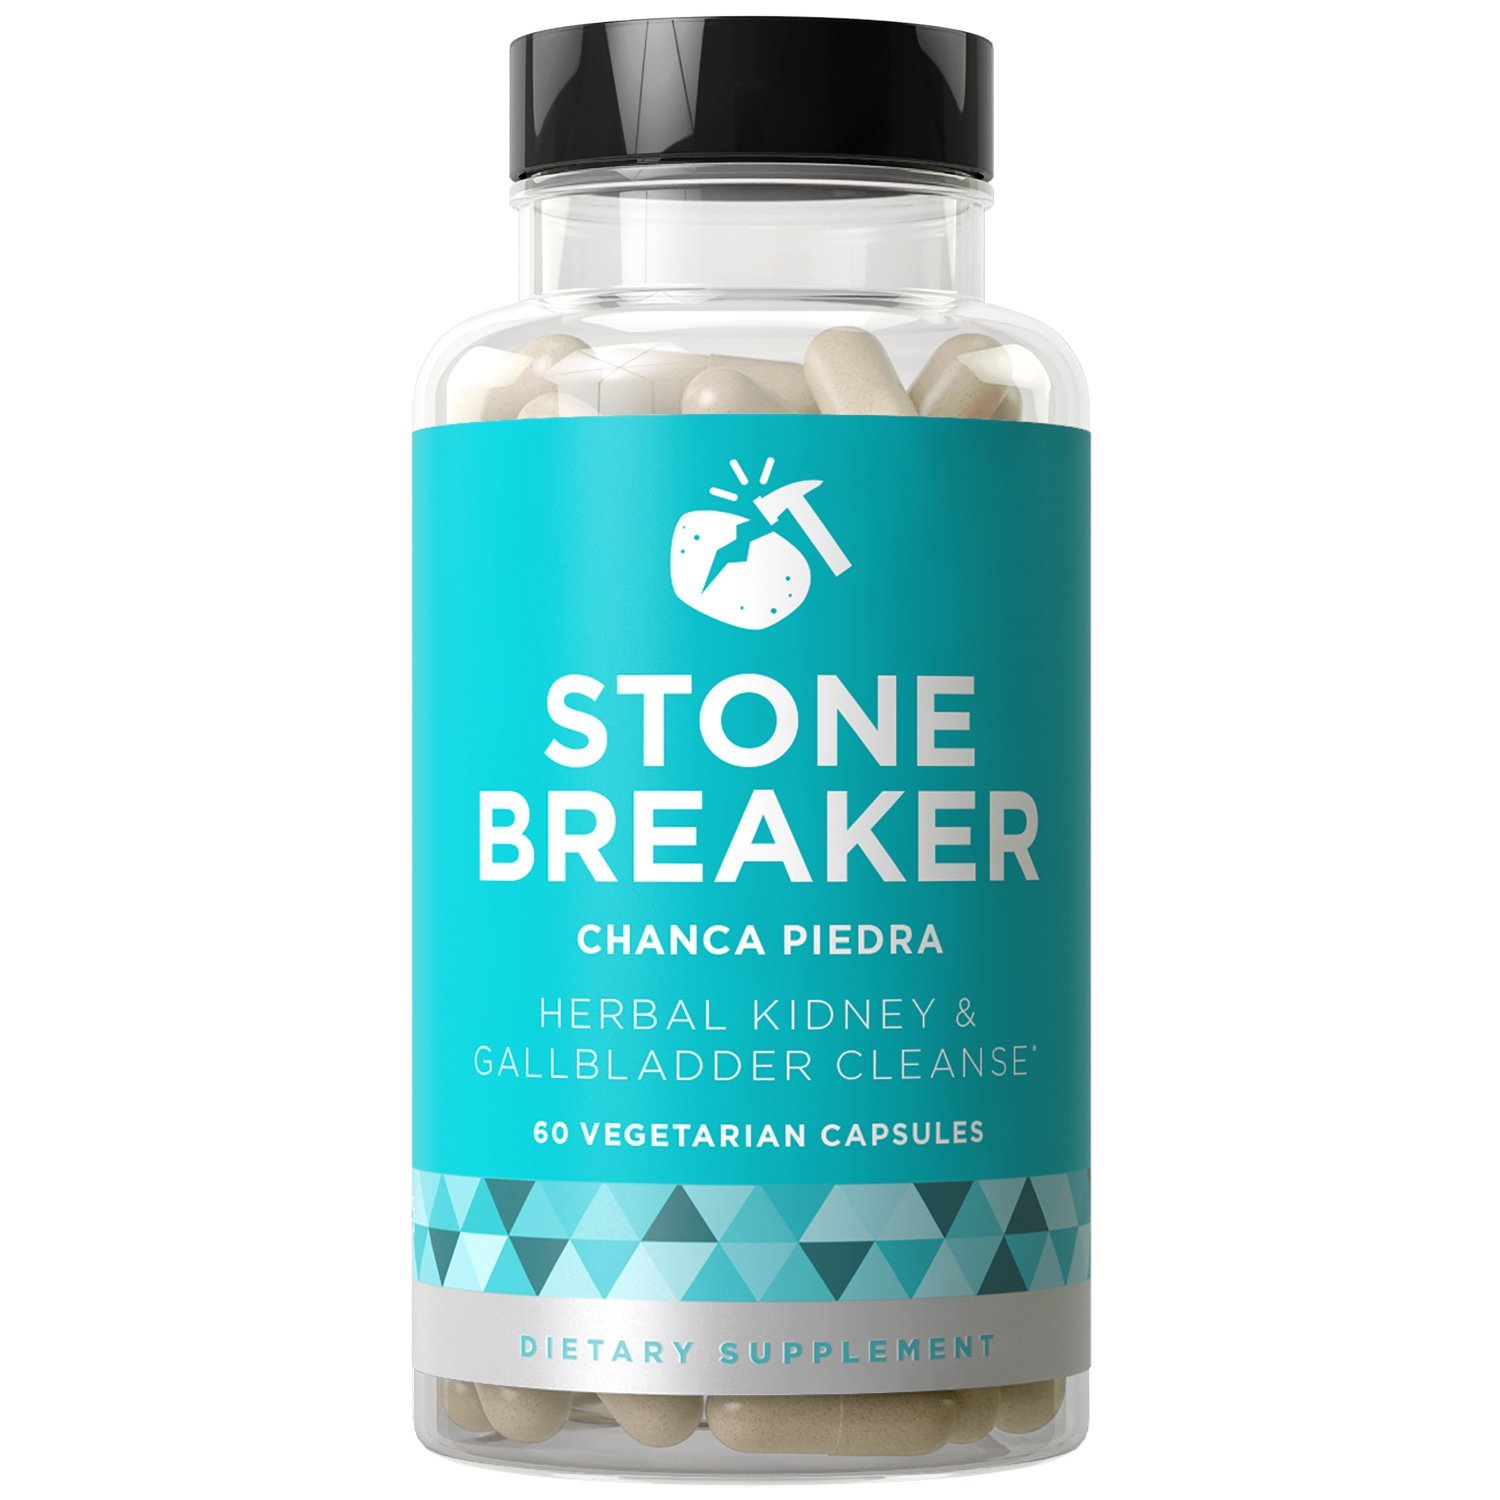 STONE BREAKER Chanca Piedra - Kidney Cleanse and Gallbladder Protection - Fact-acting Strength for Discomfort, Nausea, Urinary System - Hydrangea & Celery Seed - 60 Vegetarian Soft Capsules